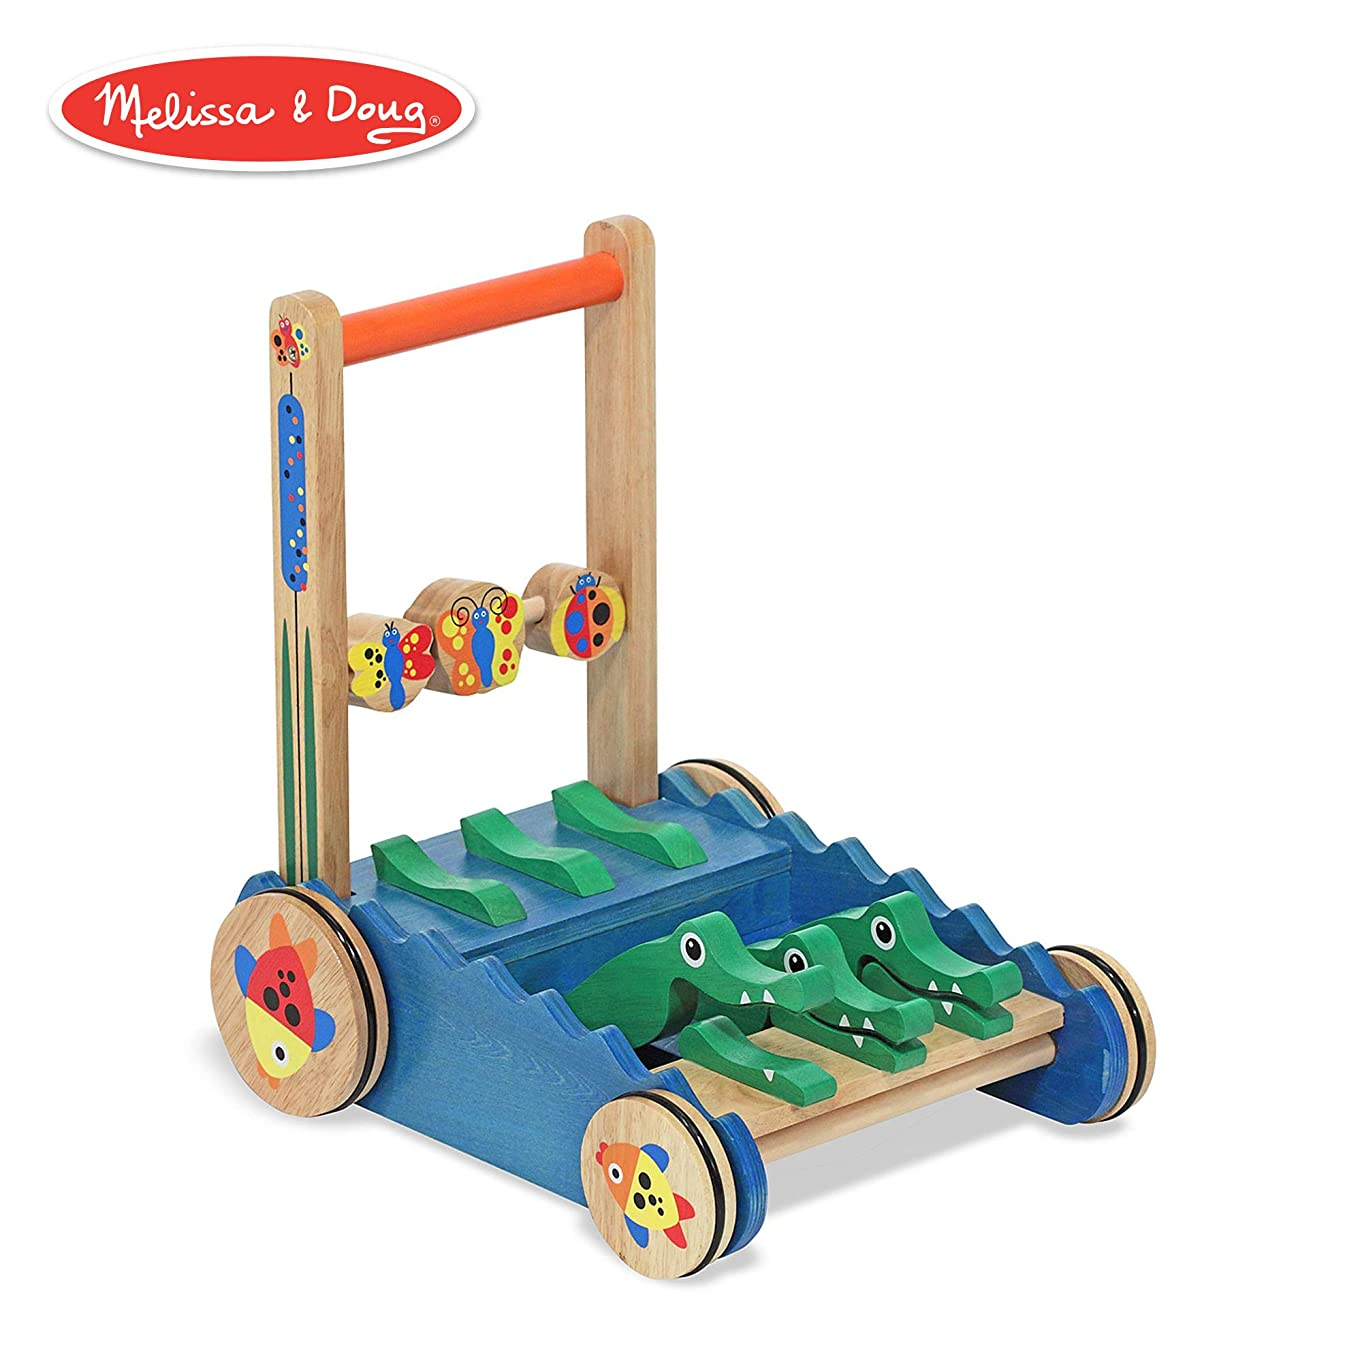 Melissa & Doug Chomp & Clack Alligator Push Toy, Wooden Activity Walker, Sturdy Construction, Makes Sounds When Pushed, 11.75″ H × 15″ W × 15″ L